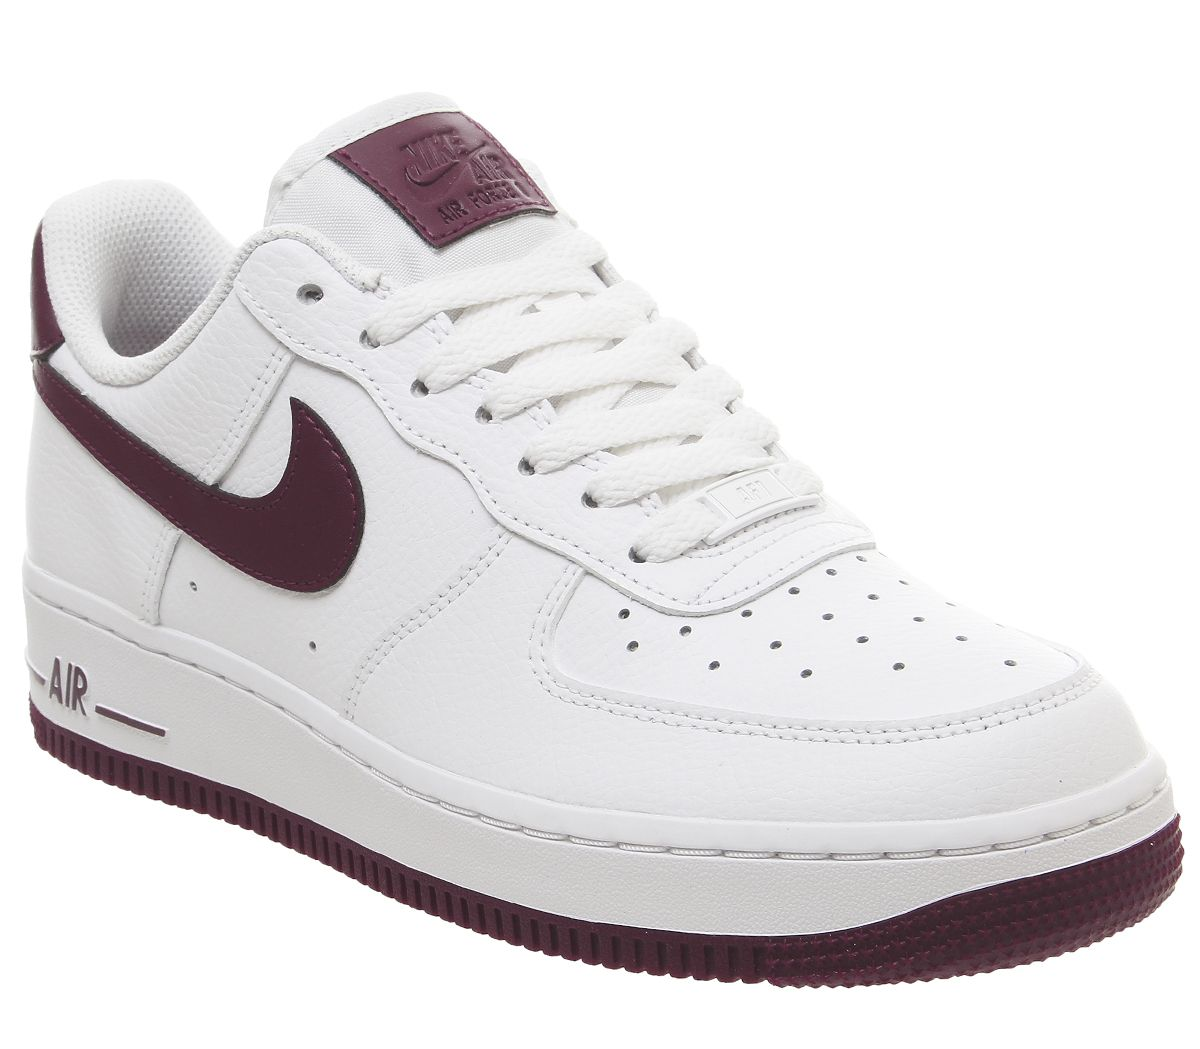 f352fe8fa7d Nike Air Force 1 07 Trainers White Bordeaux - Hers trainers